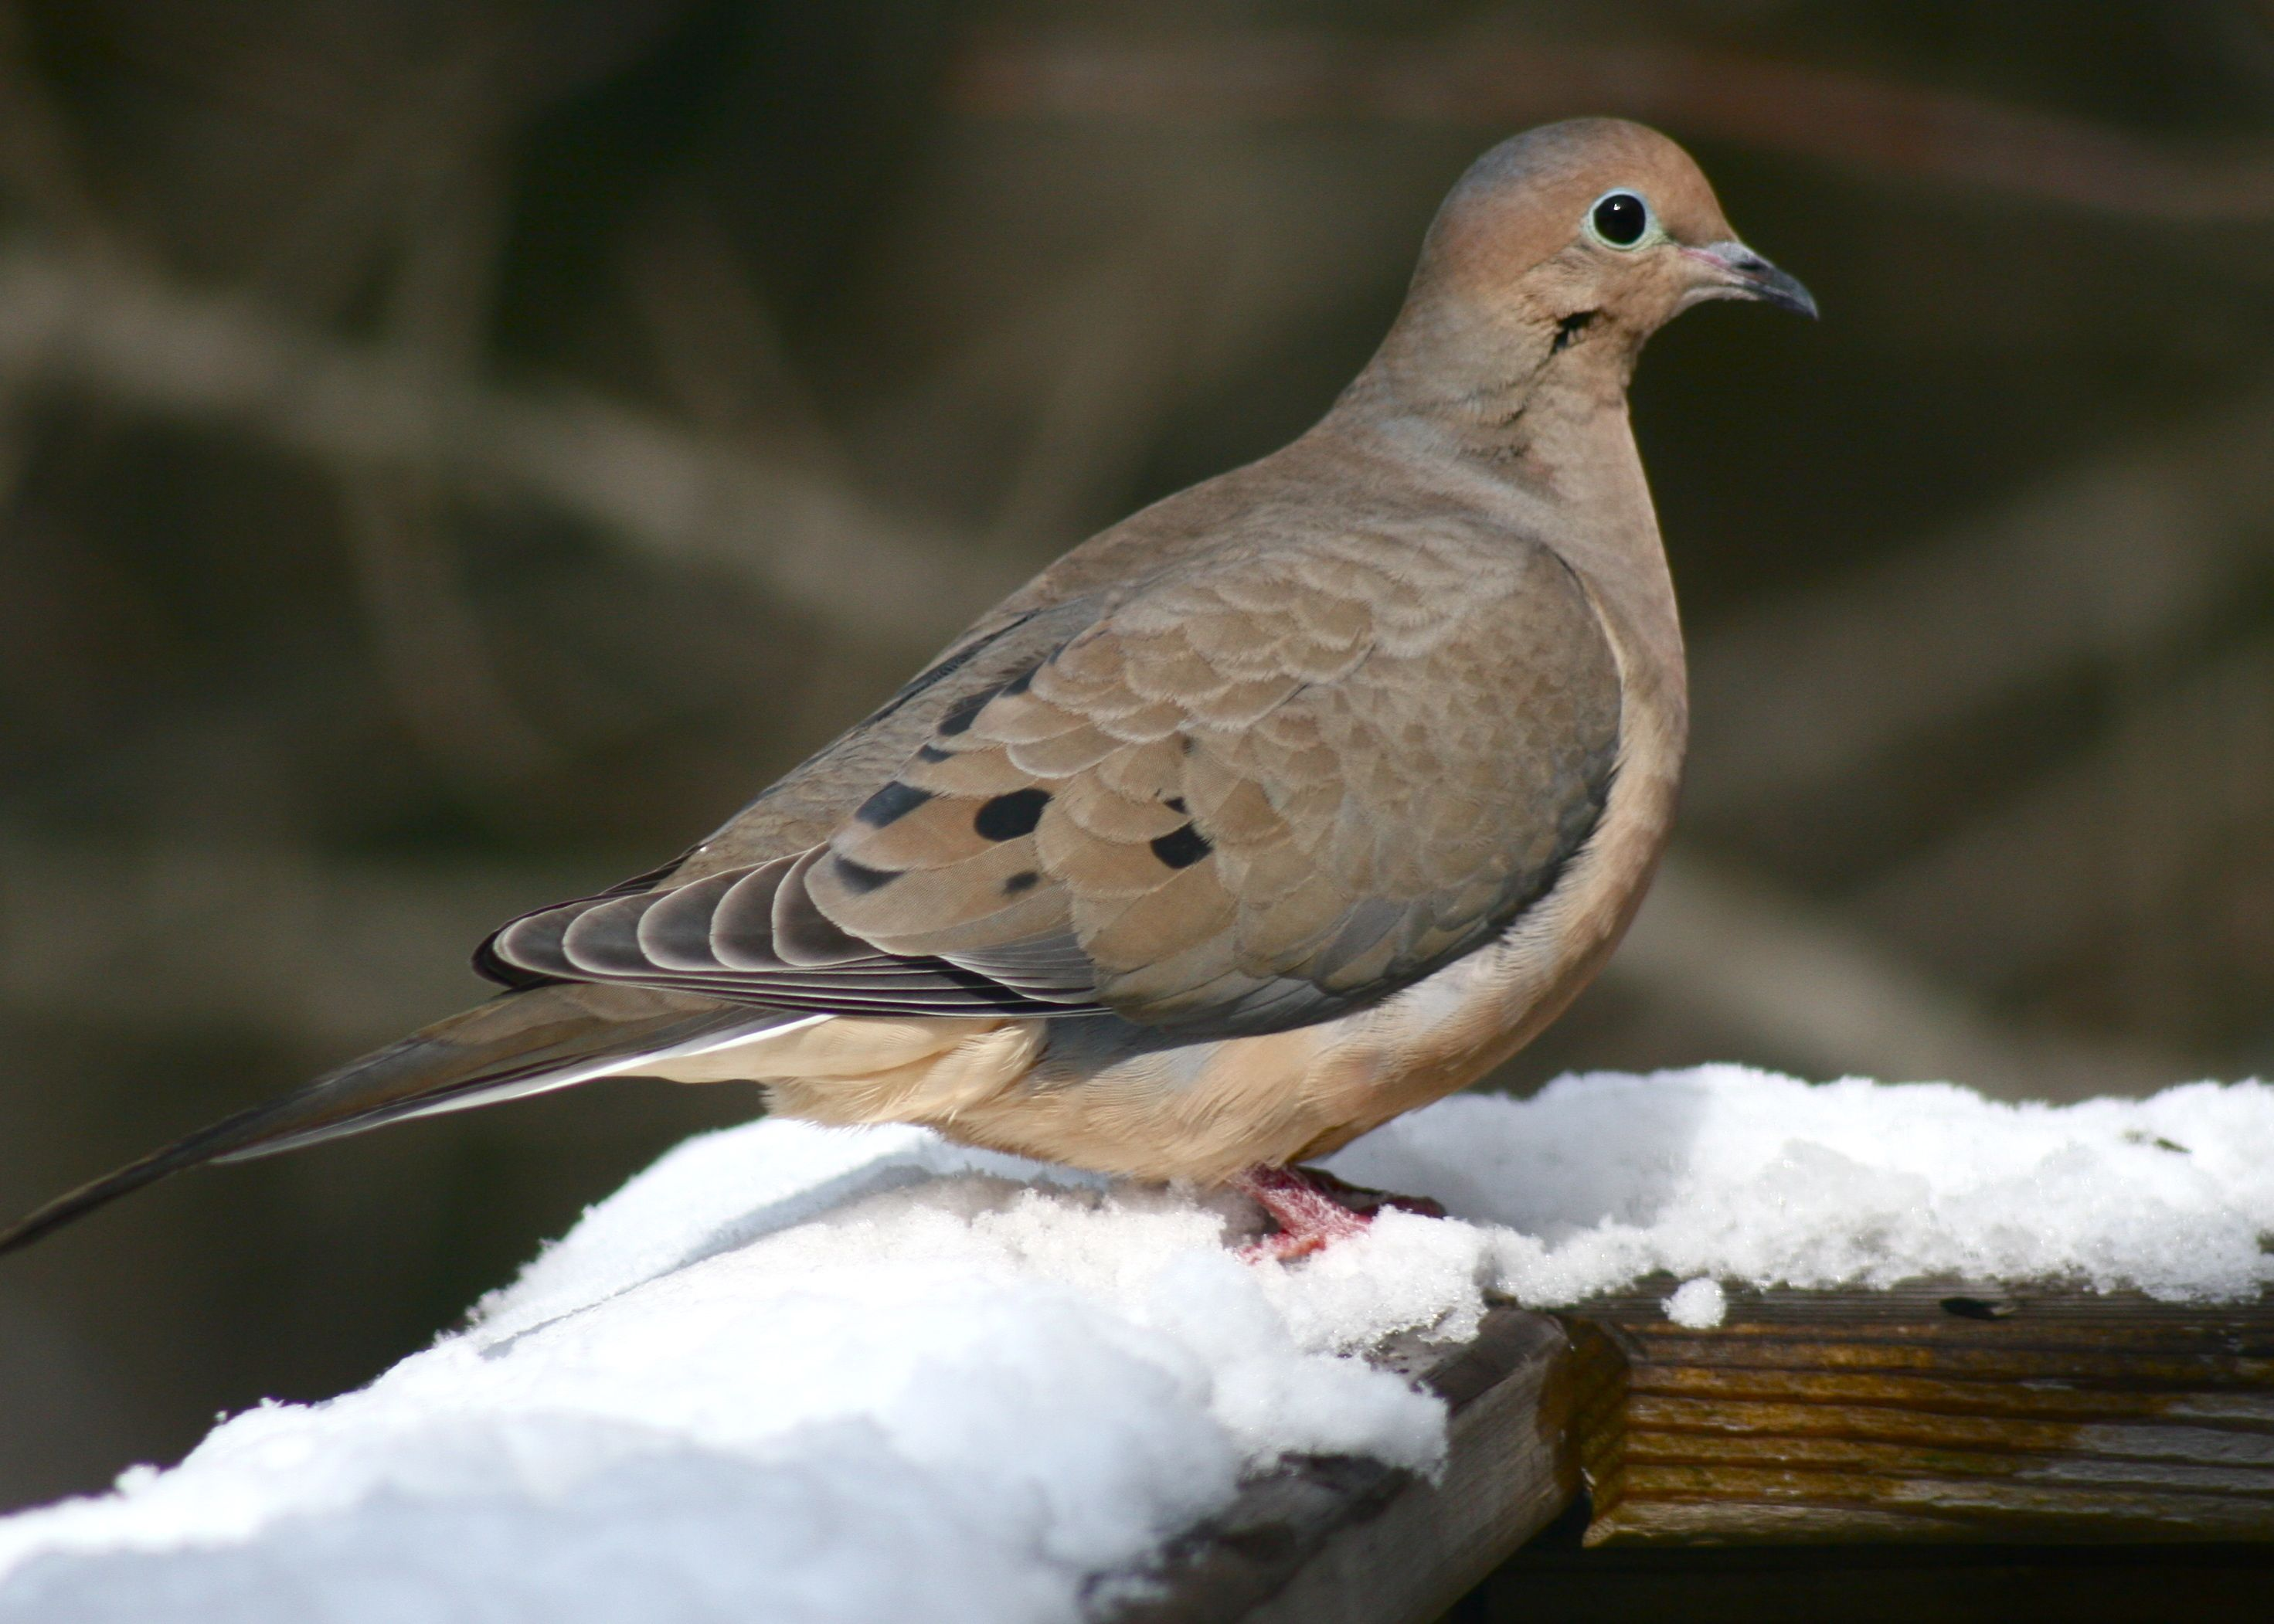 the mourning dove was the 2nd most spotted bird in the atlantic